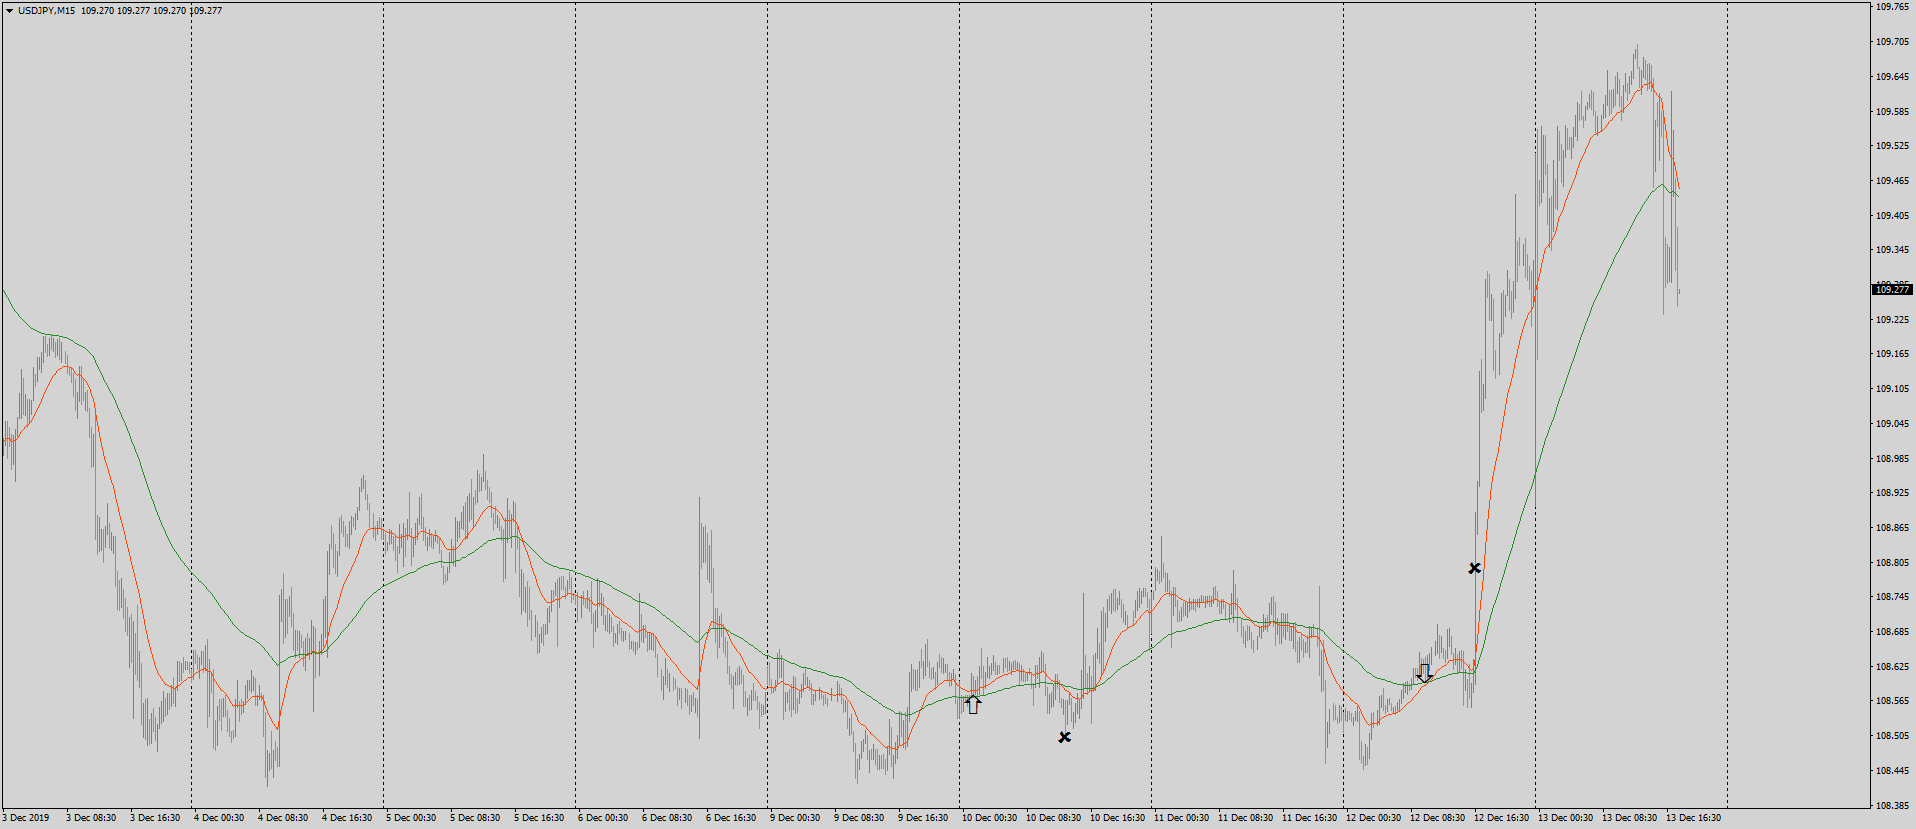 19-12-14-usdjpy-m15-tradexfin-limited.png